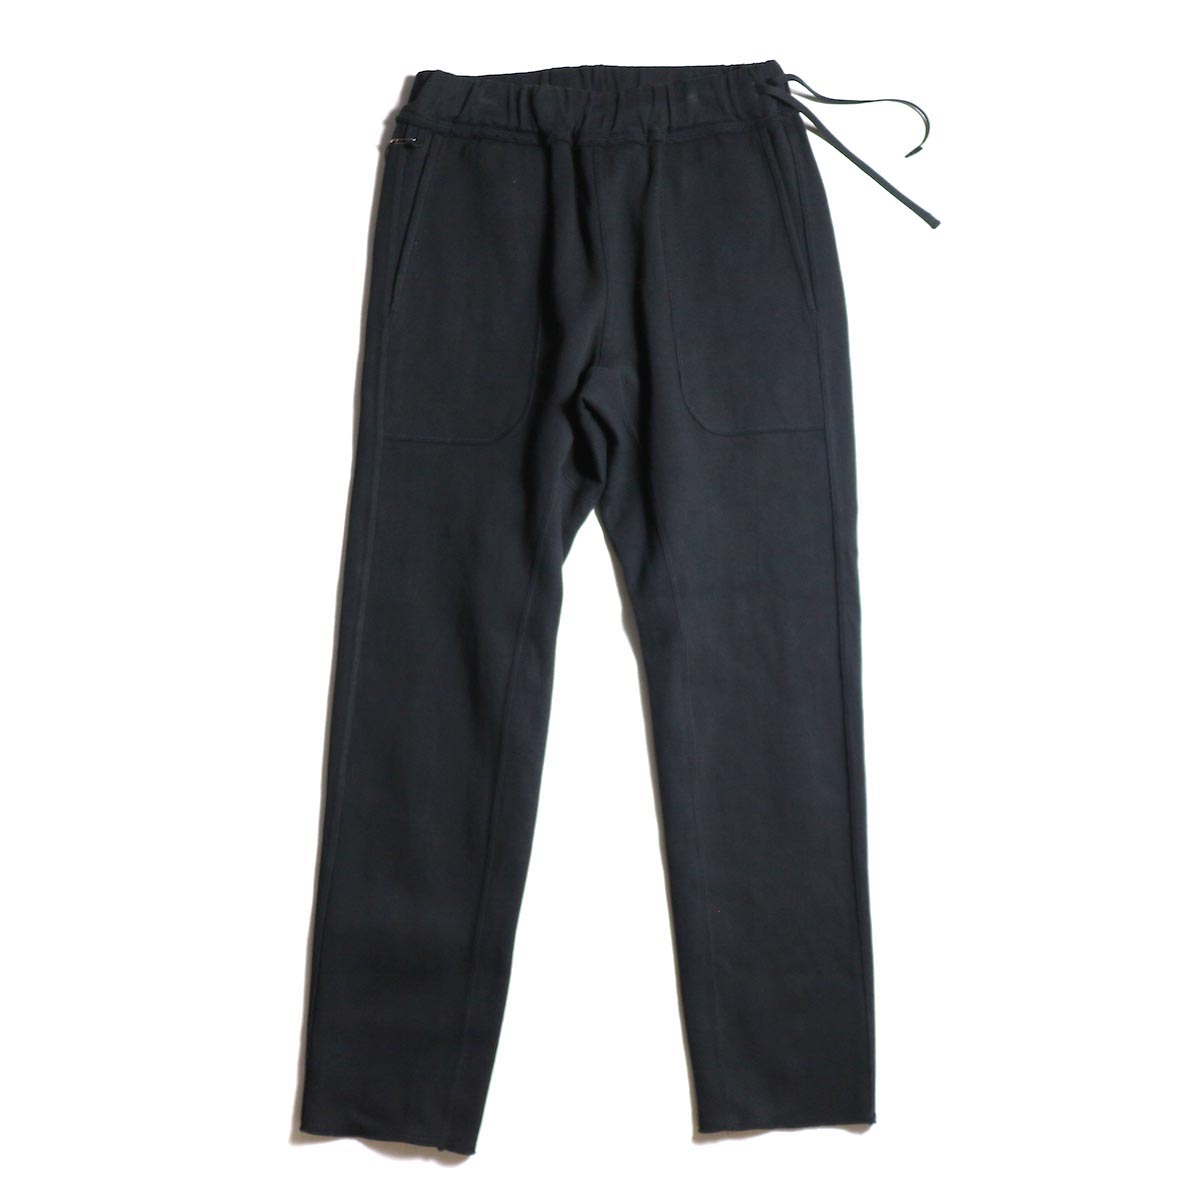 CURLY / DELIGHT CLIMBING TROUSERS with RAIN DELIGHT -GRAYCURLY / FROSTED EZ TROUSERS